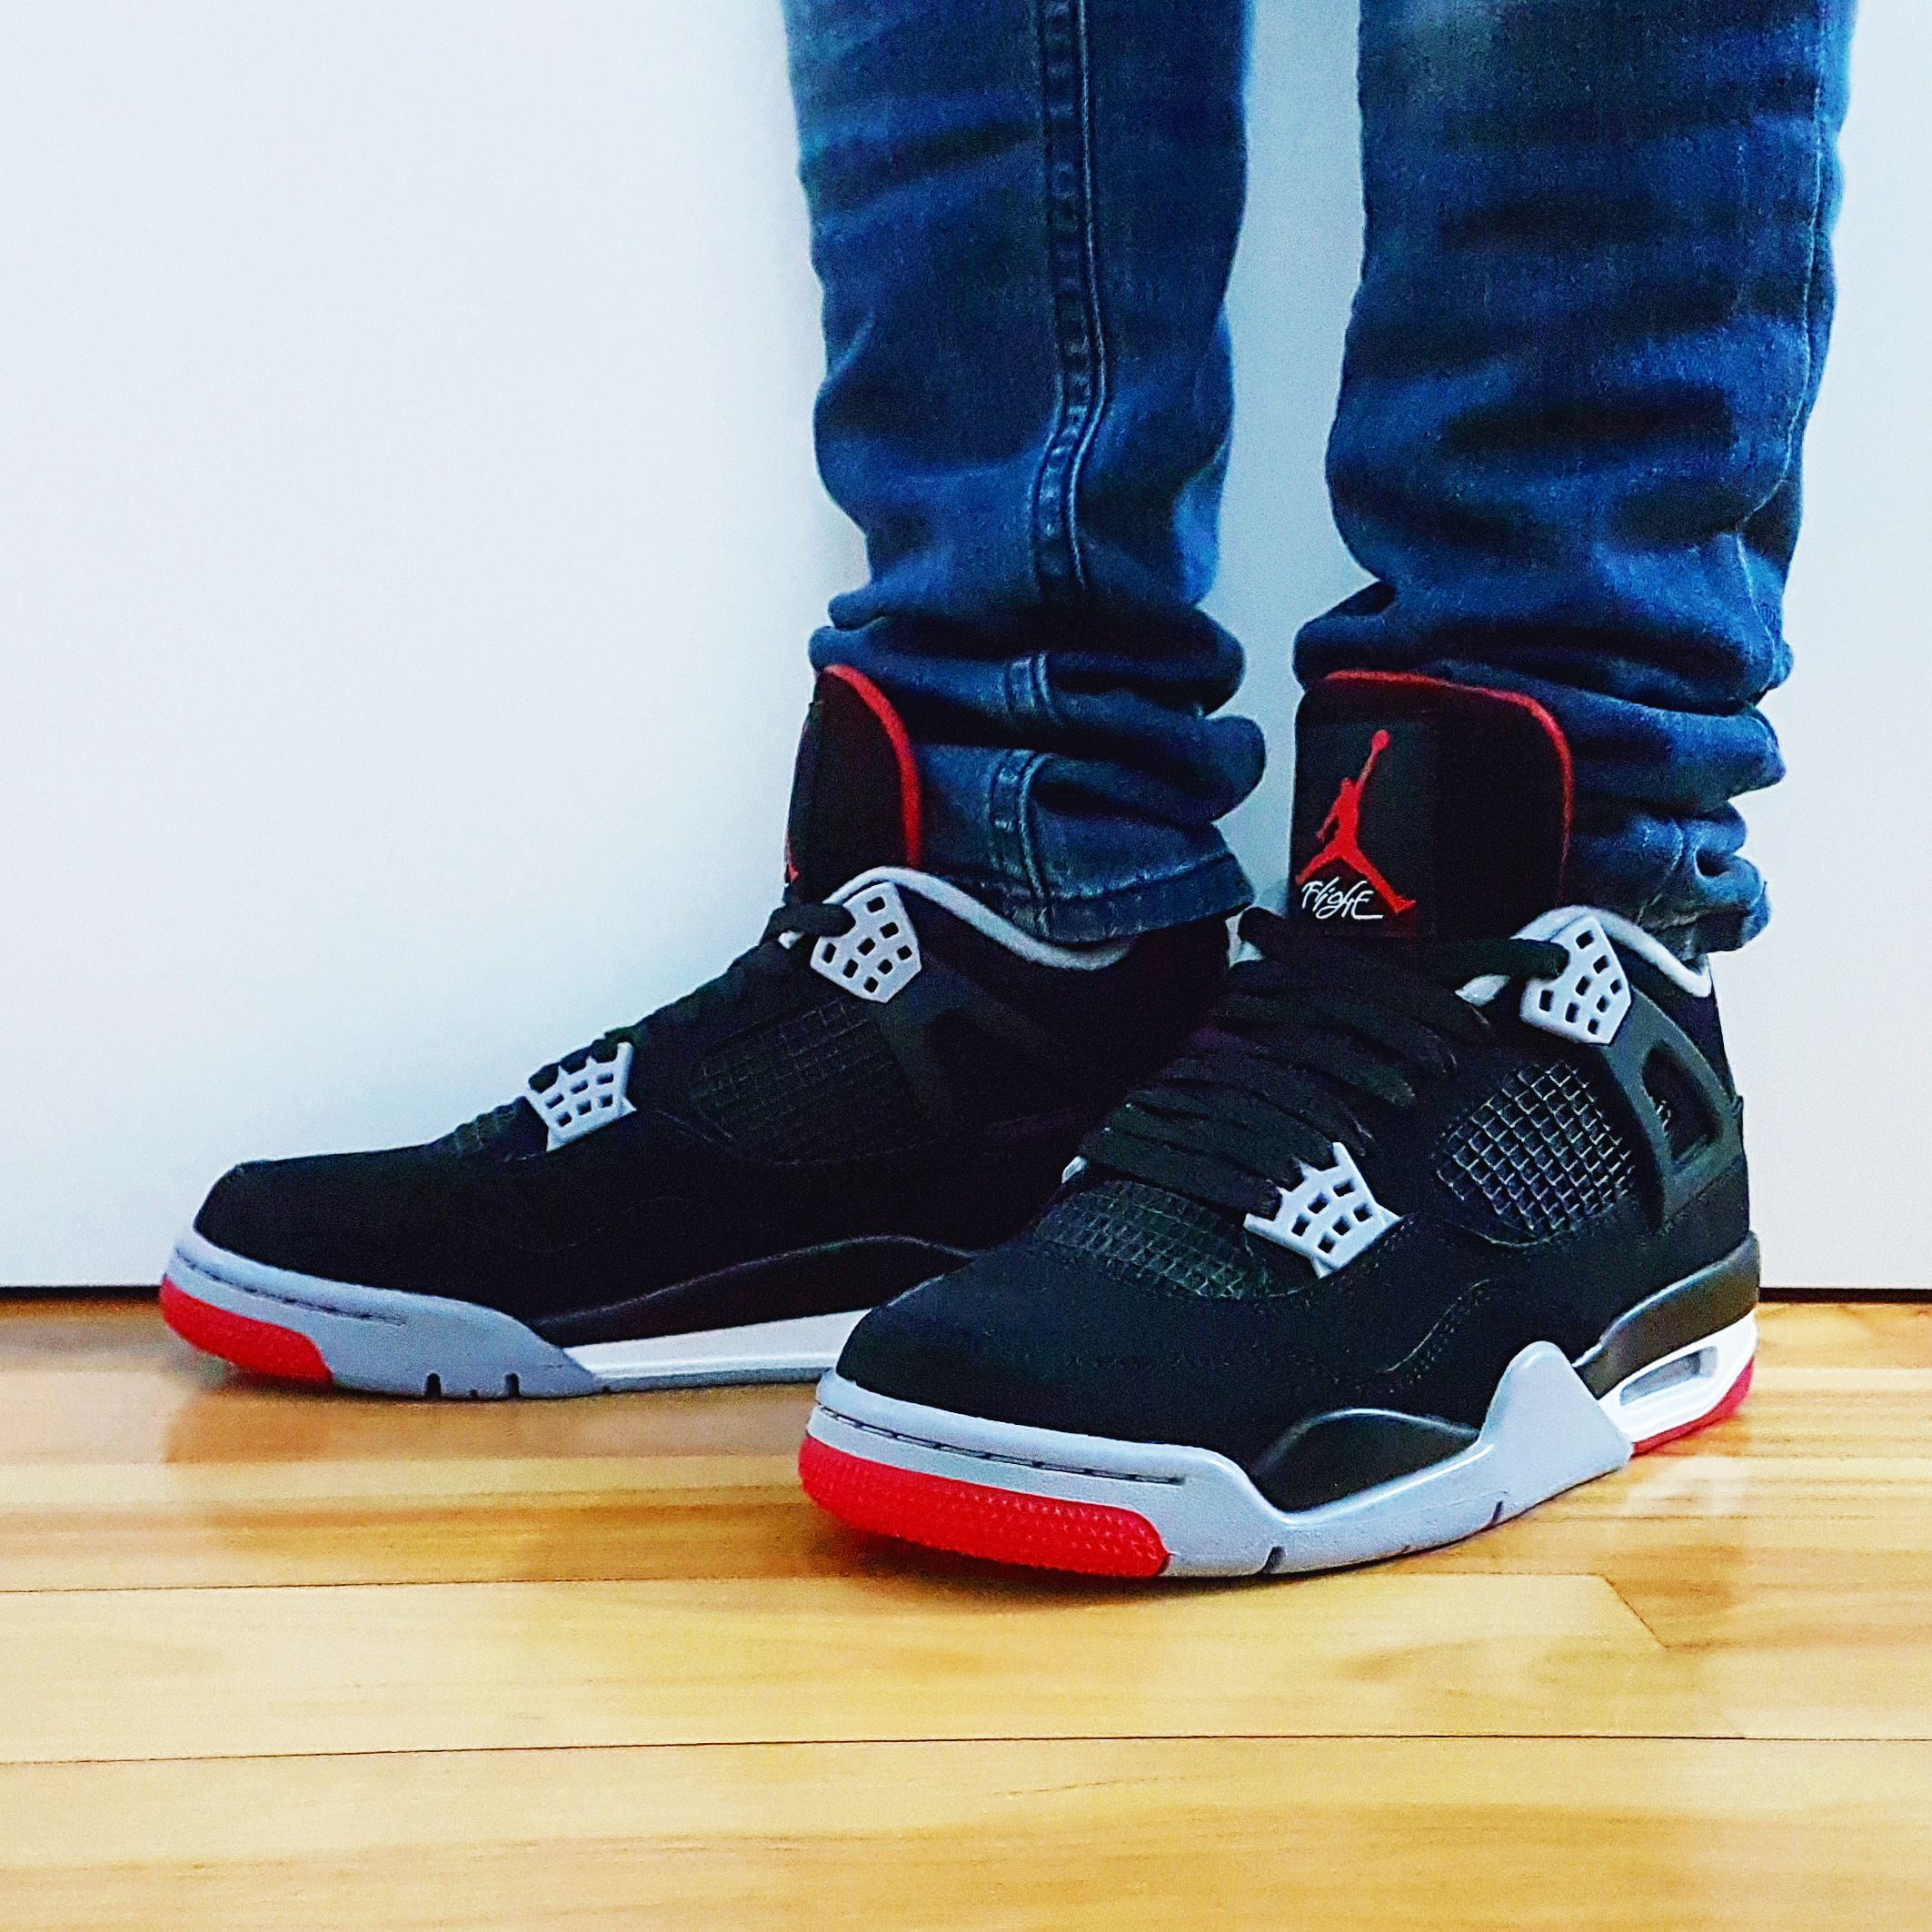 "super popular 9cbfc a9b2e Go check out my Air Jordan 4 Retro ""Bred"" 2019 on feet ..."